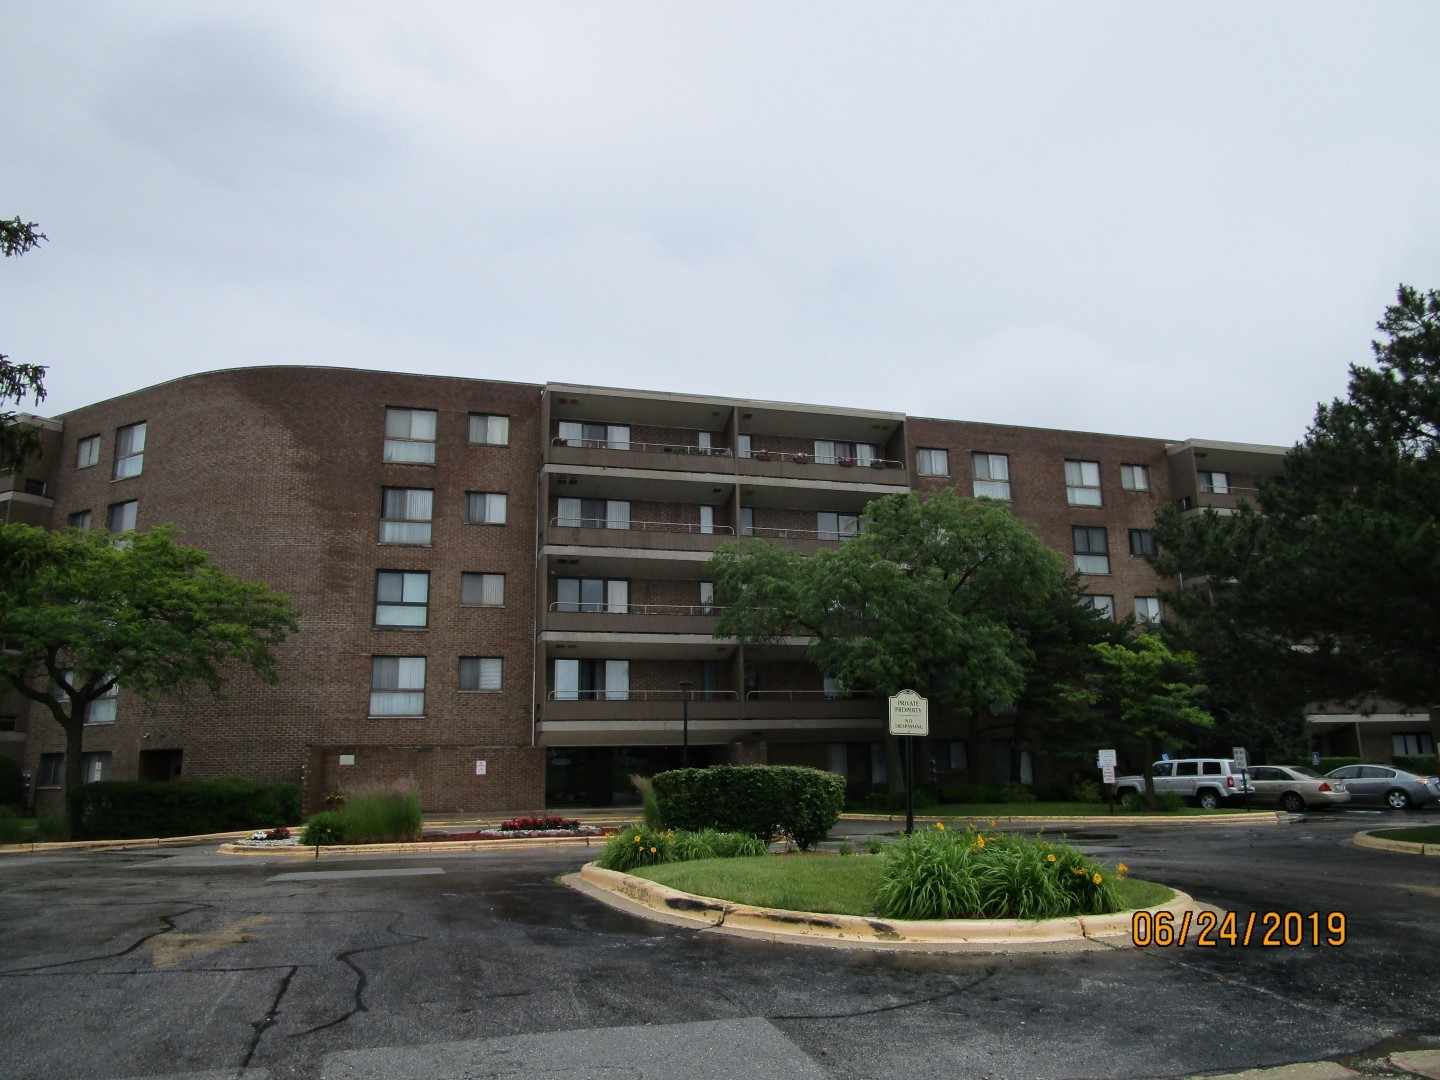 2 BEDROOM 2 BATHROOM CONDO NEEDING REHAB AT A GREAT PRICE. THIS UNIT IS ON TH 2ND FLOOR IN A SAFE BUILDING WITH MANY AMENITIES OFFERED.  NOT BANK OWNED AND NOT A SHORT SALE, OWNERS ARE LOCAL AND MOTIVATED.  THIS HOME IS BEING SOLD AS-IS, SO PLEASE INSPECT PRIOR TO SUBMITTING AN OFFER.  PLEASE NOTE: 0% TAX PRORATIONS ARE OFFERED, THE SELLER WILL PAY CURRENT AND ALL PRIOR TAX BUT 0% CREDIT FOR FUTURE BILLS.  SPECIAL WARRANTY DEED AT CLOSING. NO SURVEY.  FOR FASTER RESPONSE PLEASE USE SELLERS CONTRACT, ADDENDUM AND DISCLOSURES UNDER DOCUMENTS.